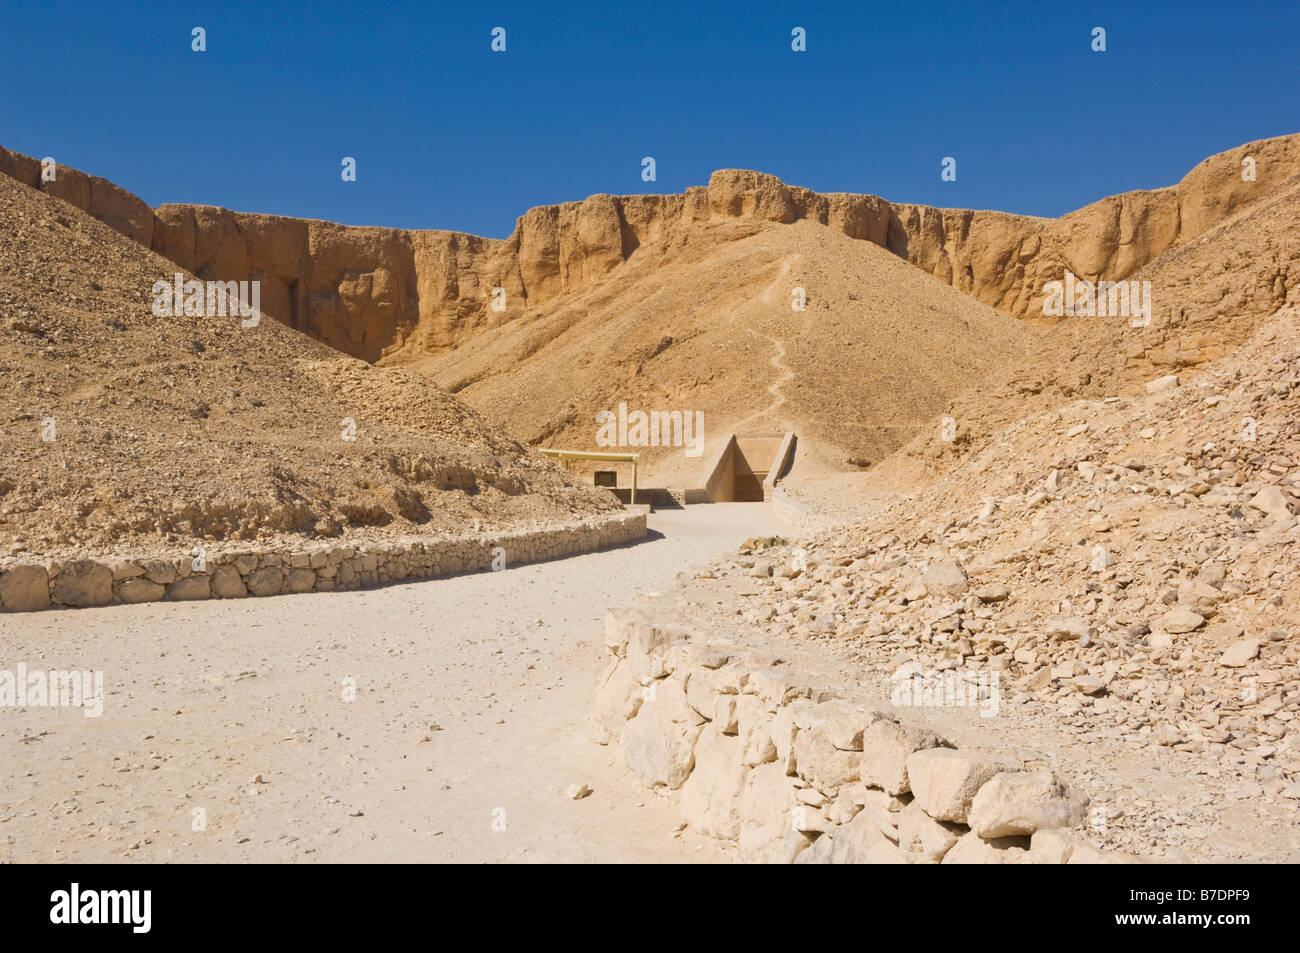 Entrance to the tomb of Pharaoh Rameses VII Valley of the Kings West bank of Luxor Egypt Middle East - Stock Image